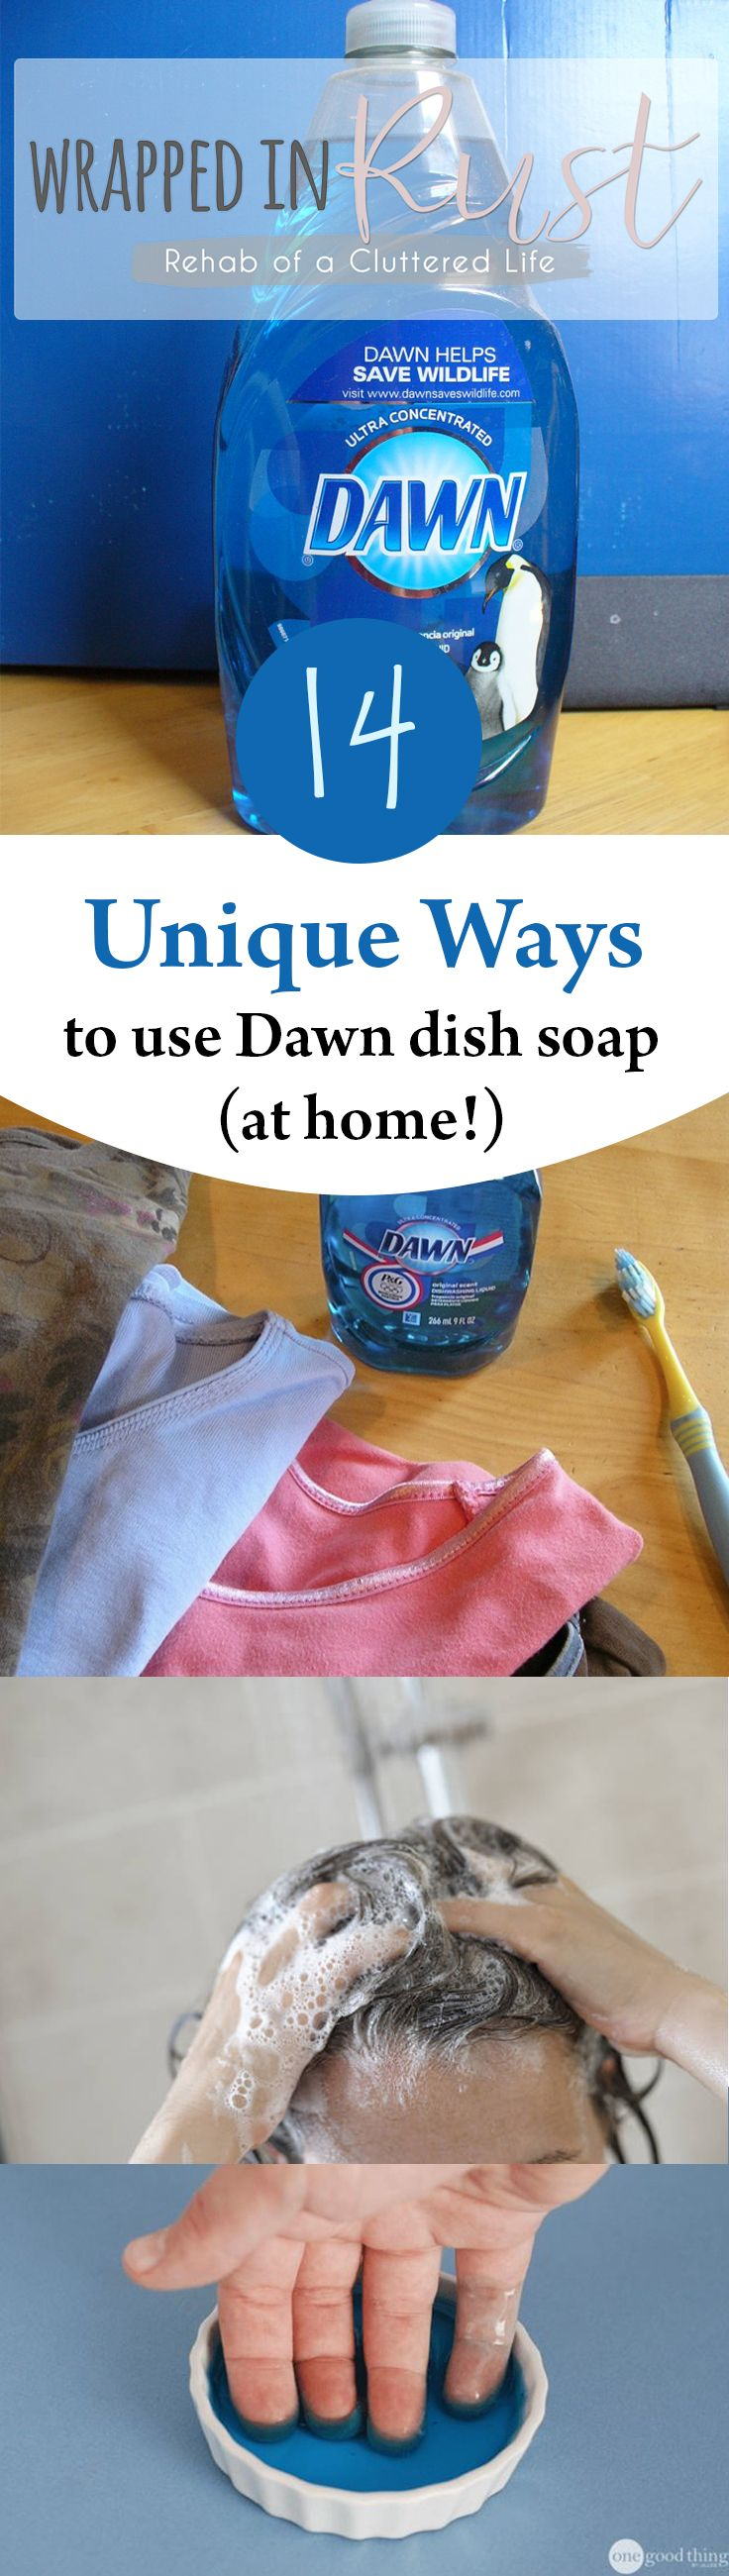 14 Unique Ways To Use Dawn Dish Soap At Home Dawn Dish Soap Cleaning Cleaning Hacks